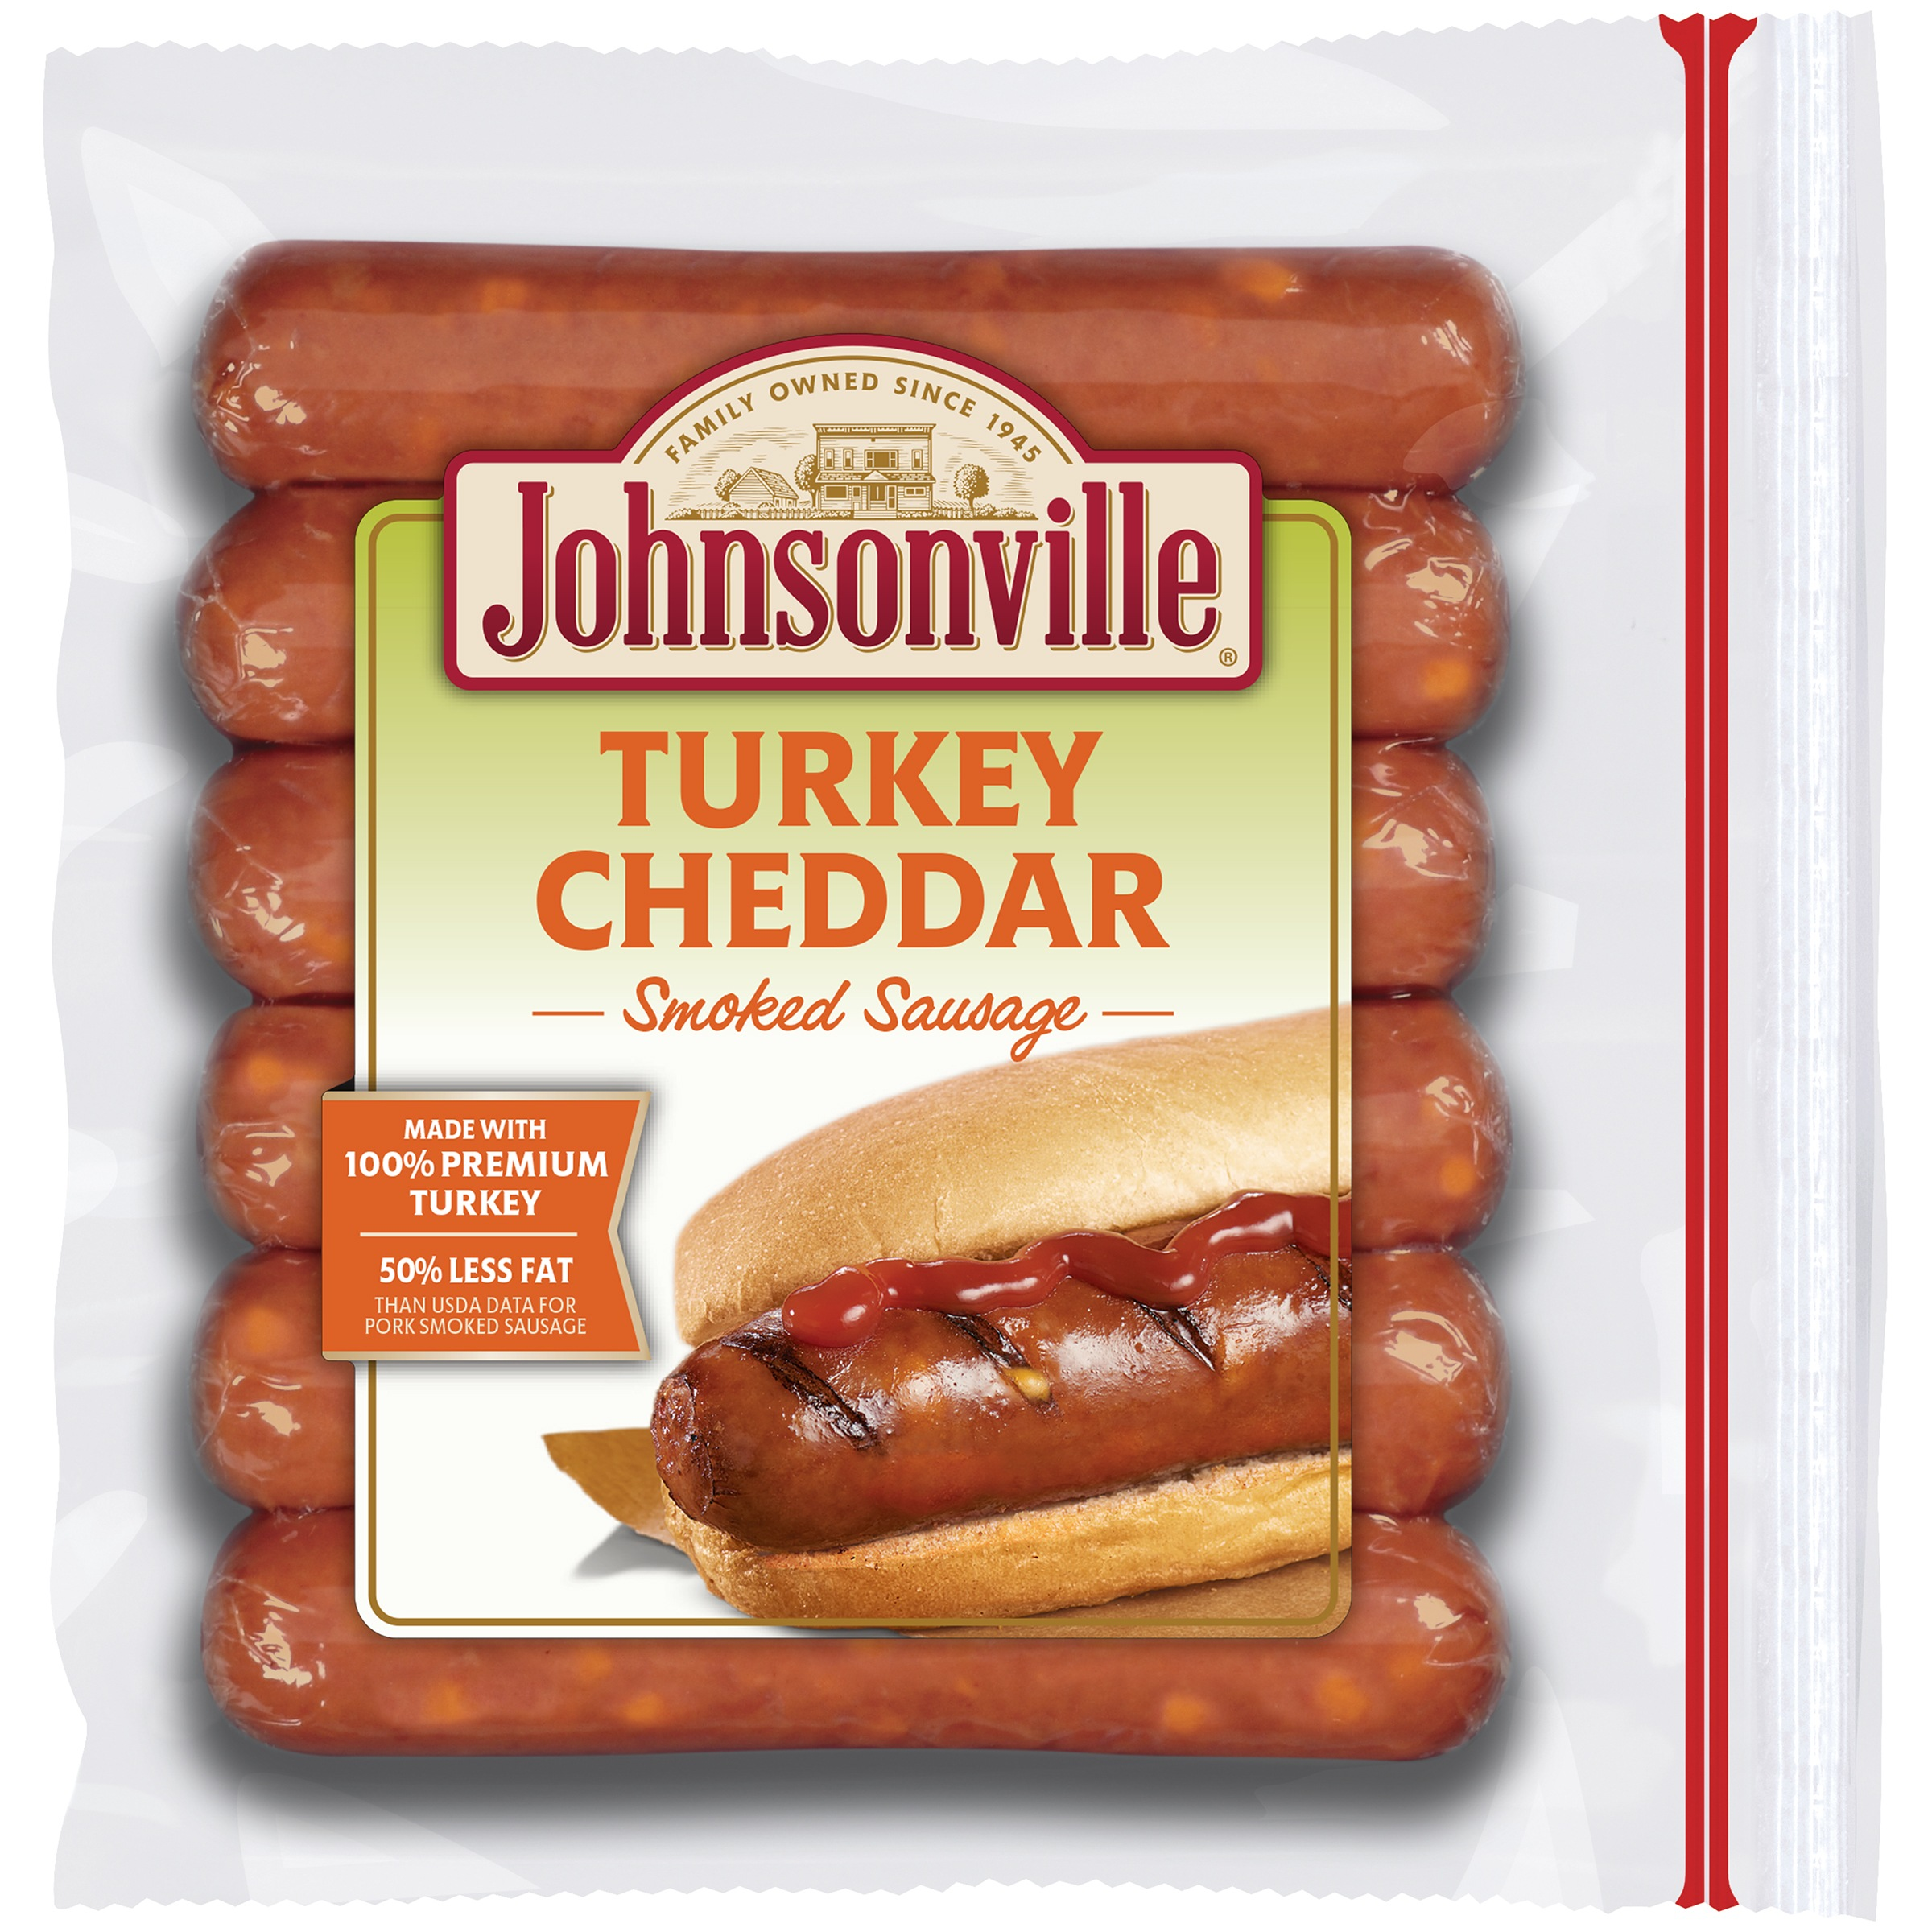 Johnsonville Smoked Turkey with Cheddar Sausage 13.5oz zip pkg (100572) by Johnsonville Sausage, L.L.C.